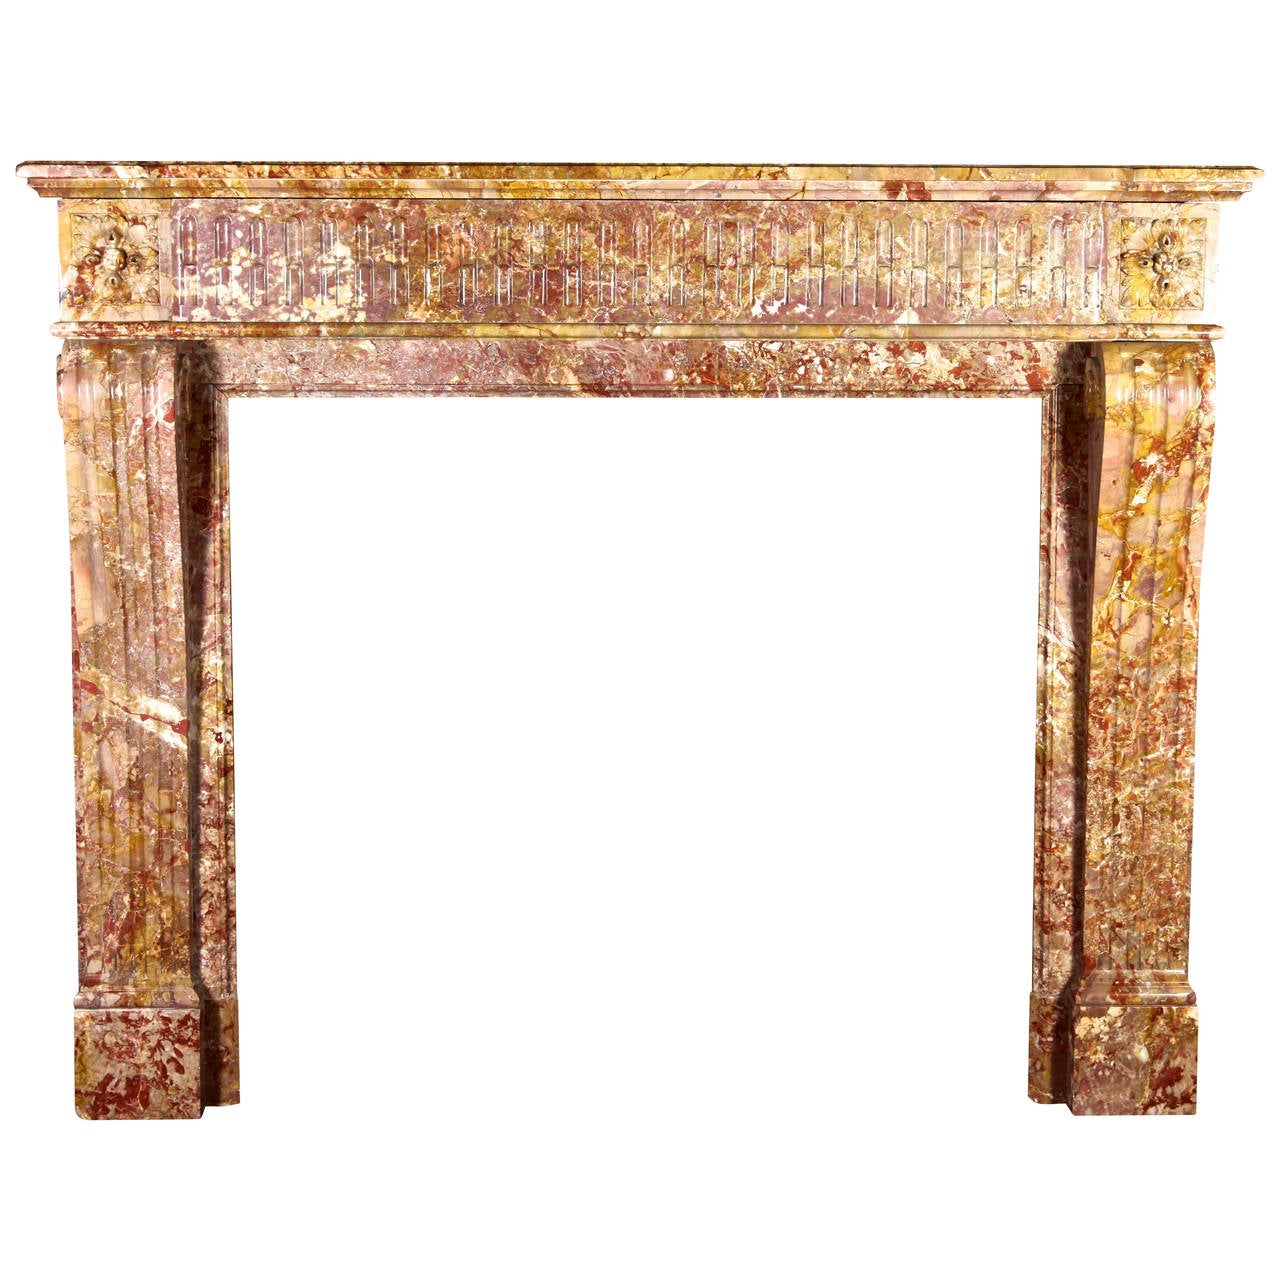 19th Century antique Fireplace mantel in Louis XVI Style